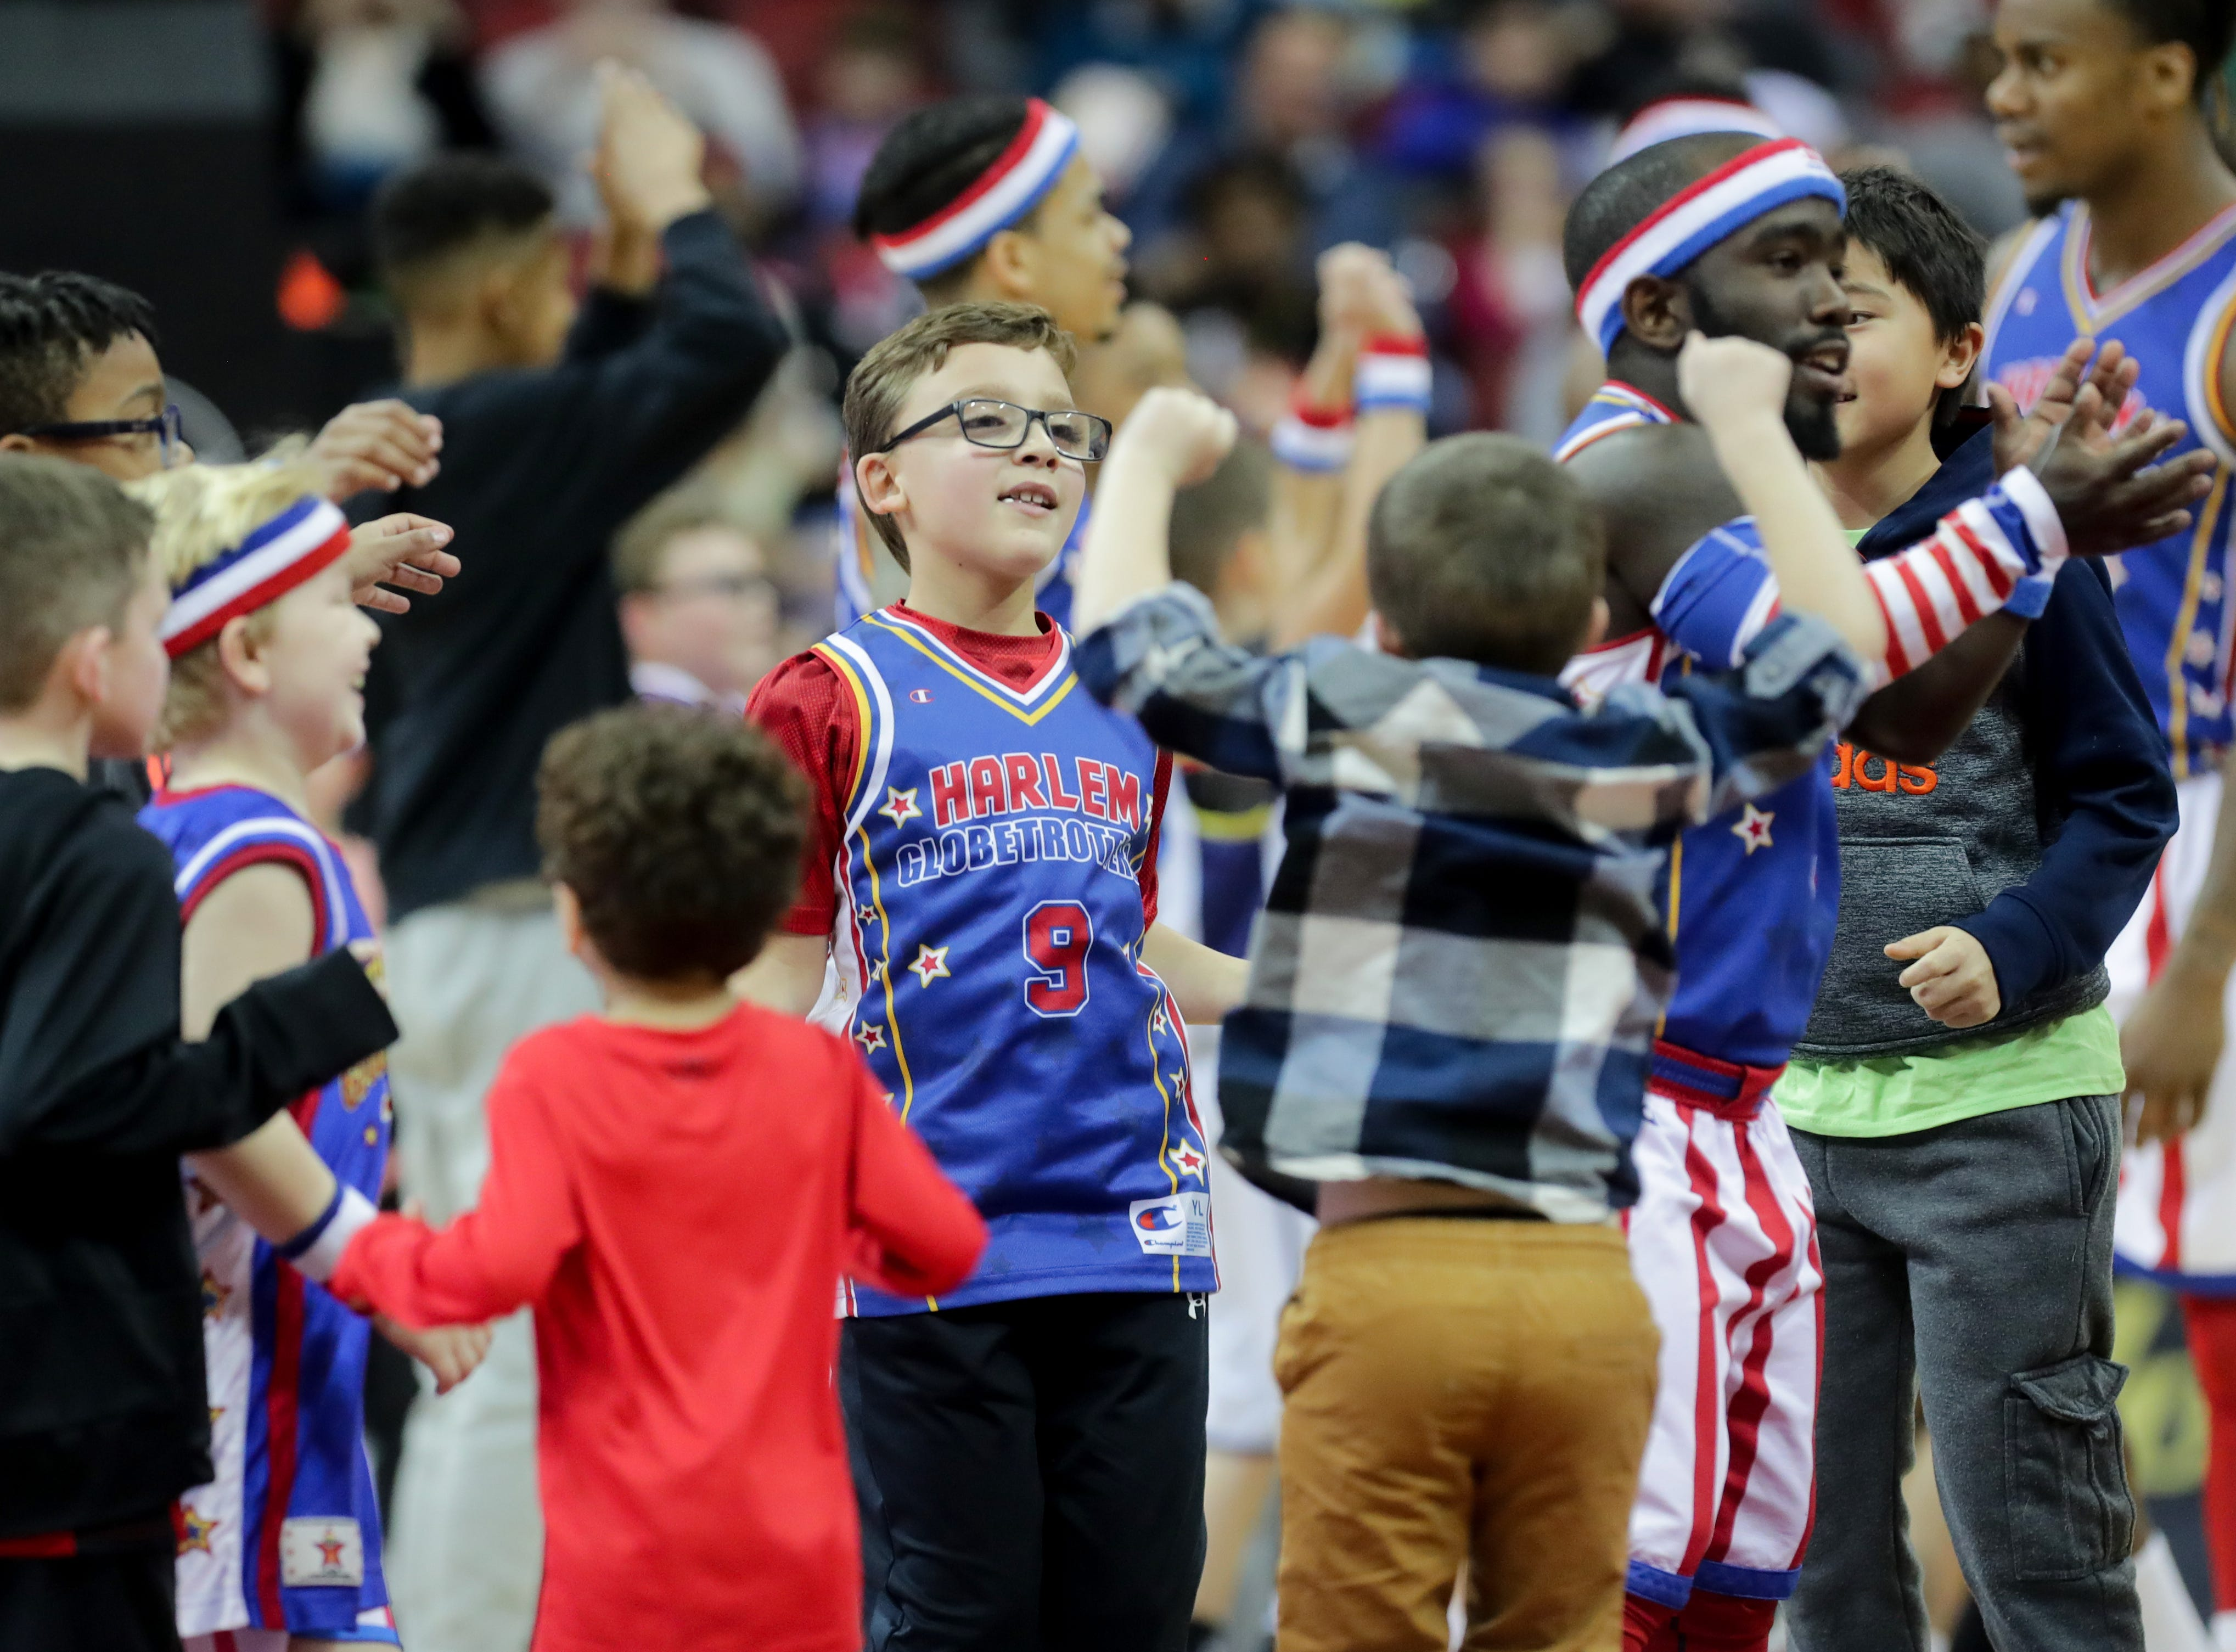 Kids had plenty of chances to dance at the Harlem Globetrotters' game. Jan. 19, 2019